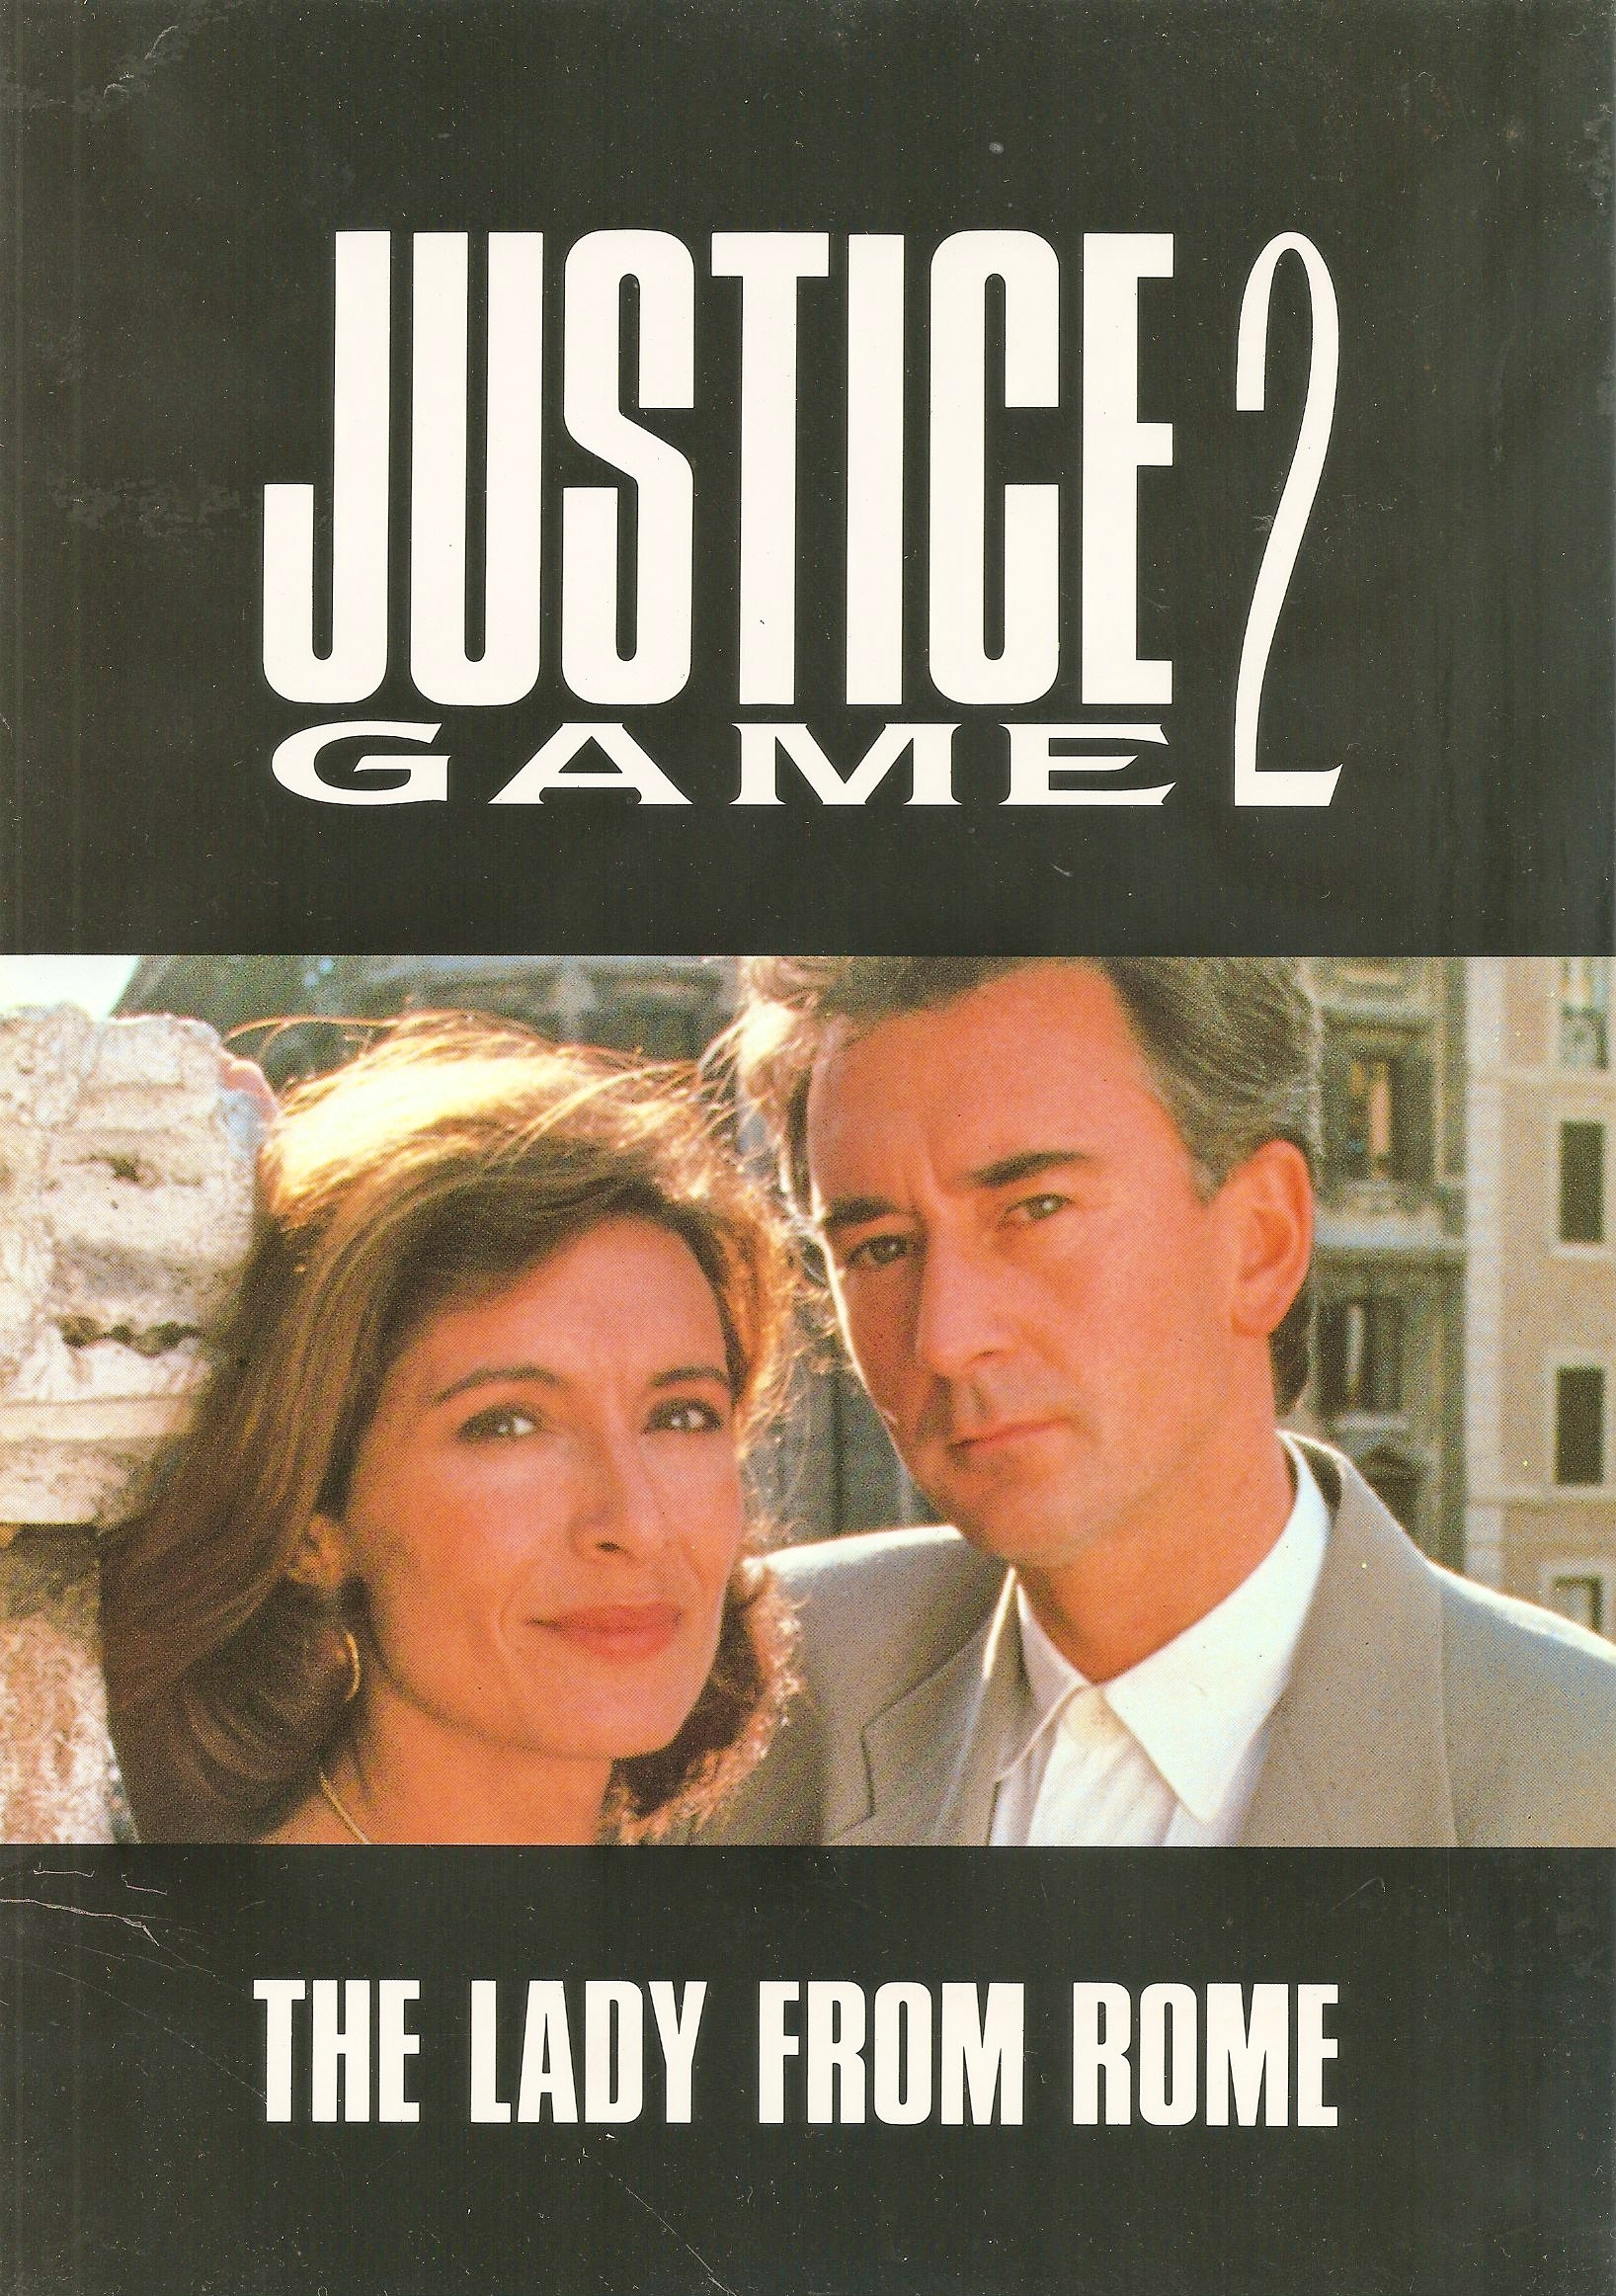 Justice Game 2